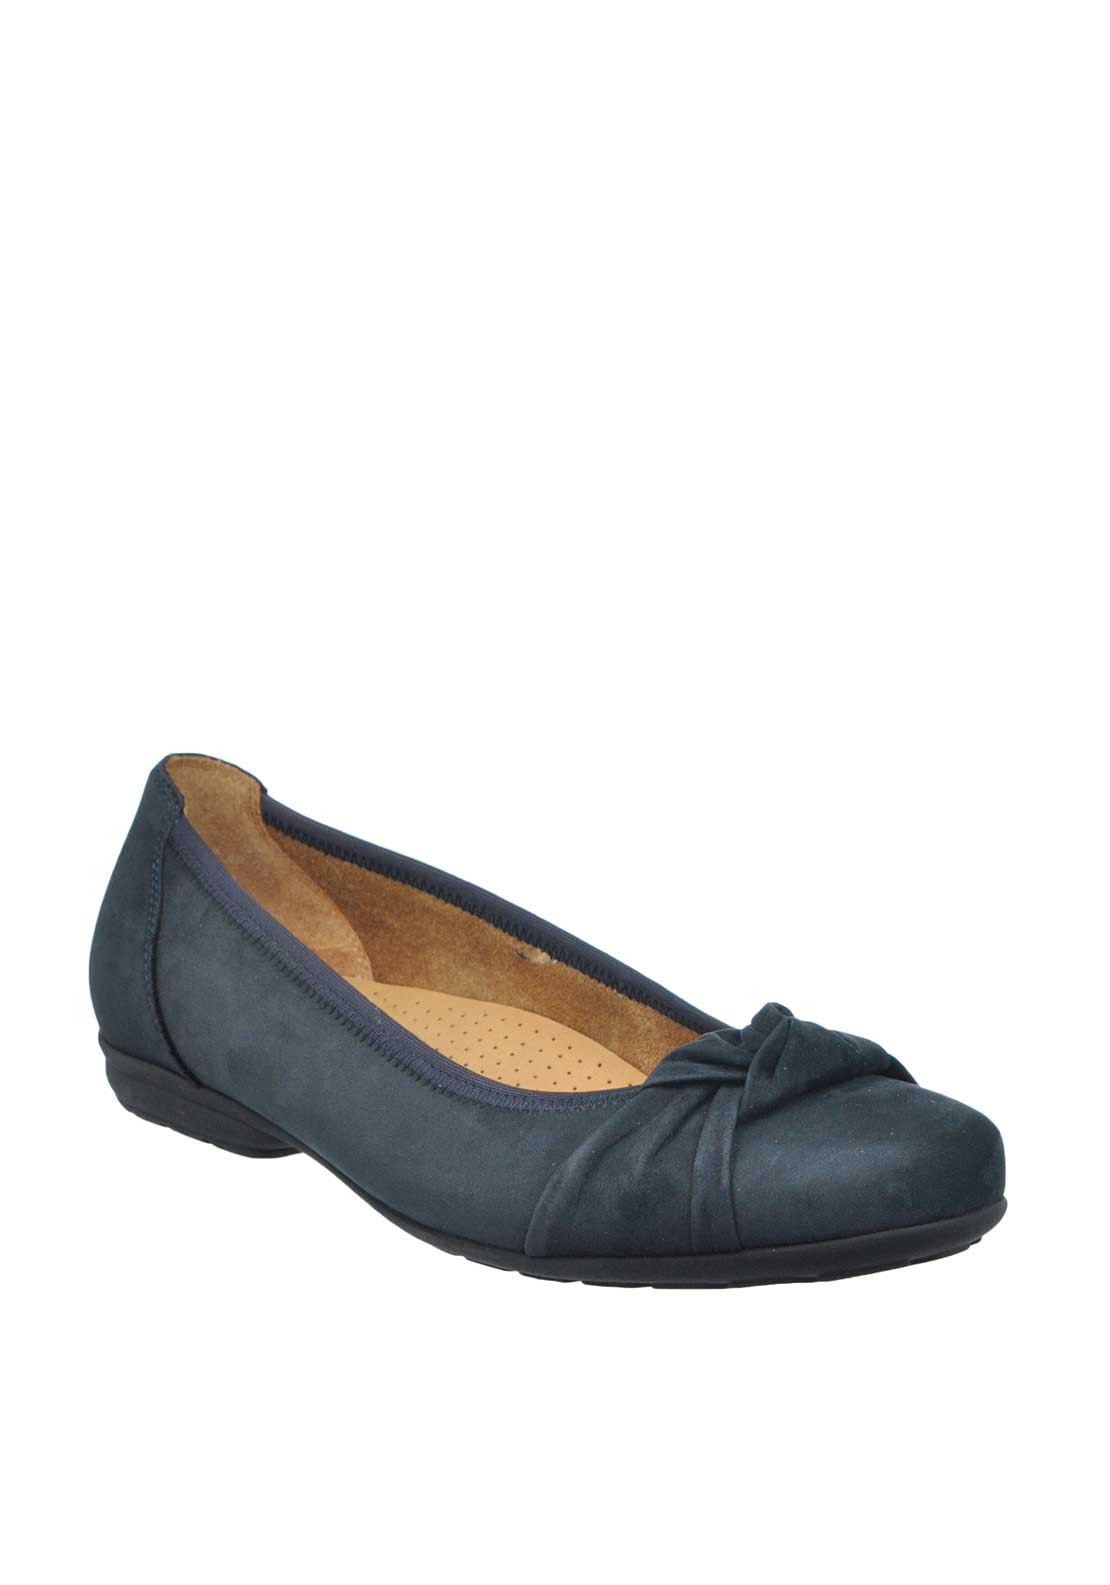 Gabor Suede Ruched Pumps, Navy